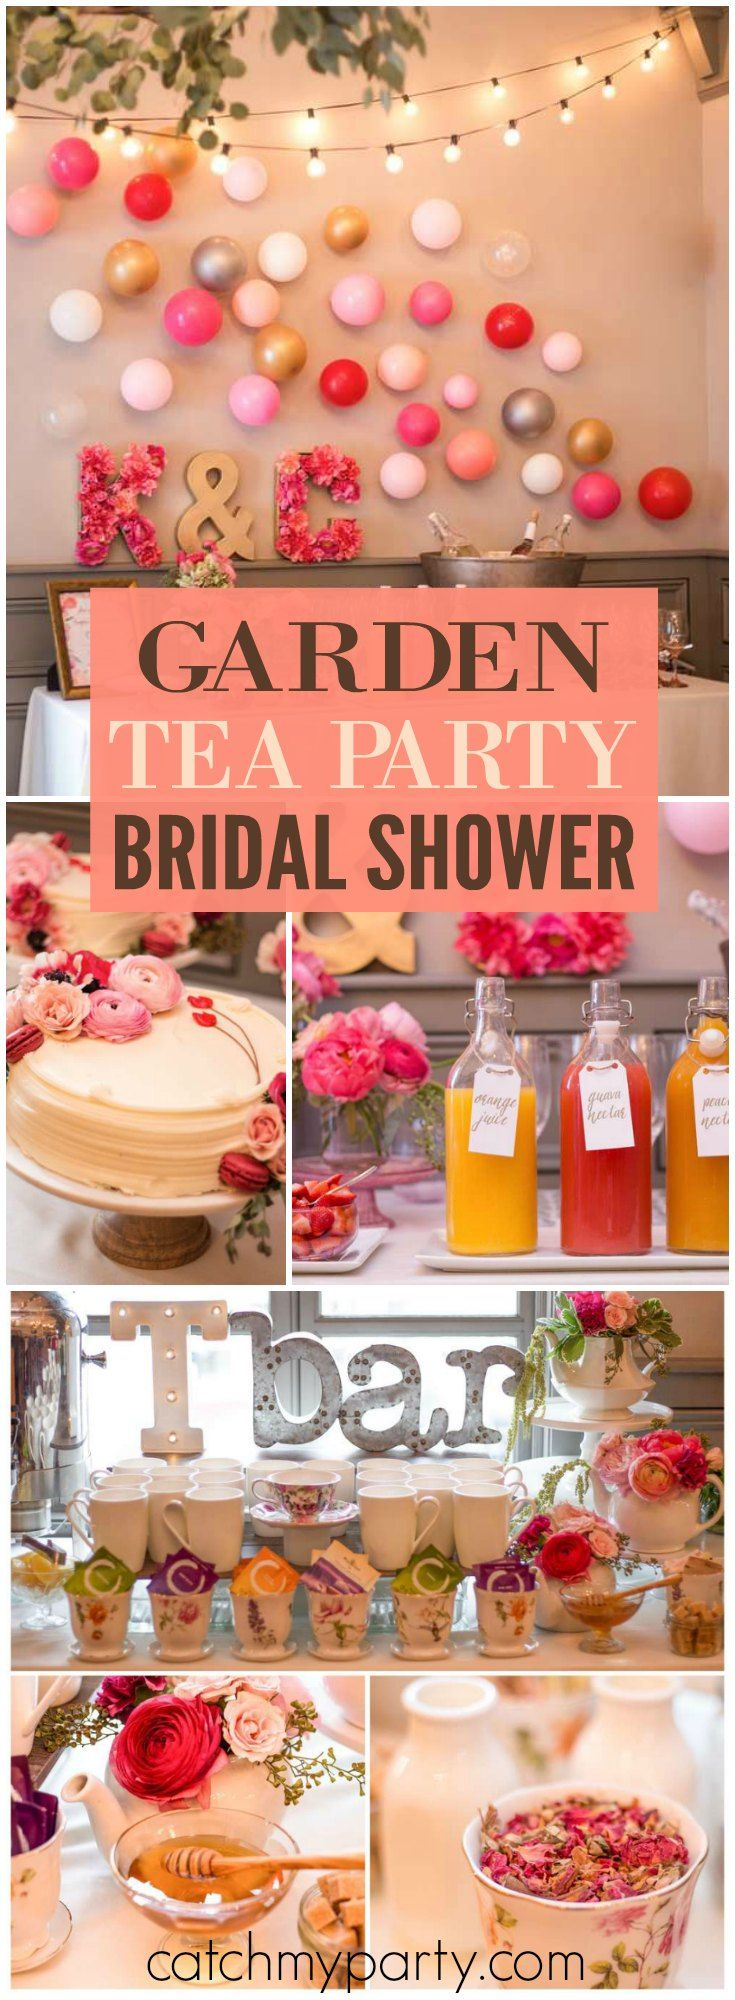 Garden Party Ideas Pinterest garden party baby shower ideas 17 best images about baby shower party ideas on pinterest Garden Tea Party Bridalwedding Shower Kimberly S Garden Tea Party